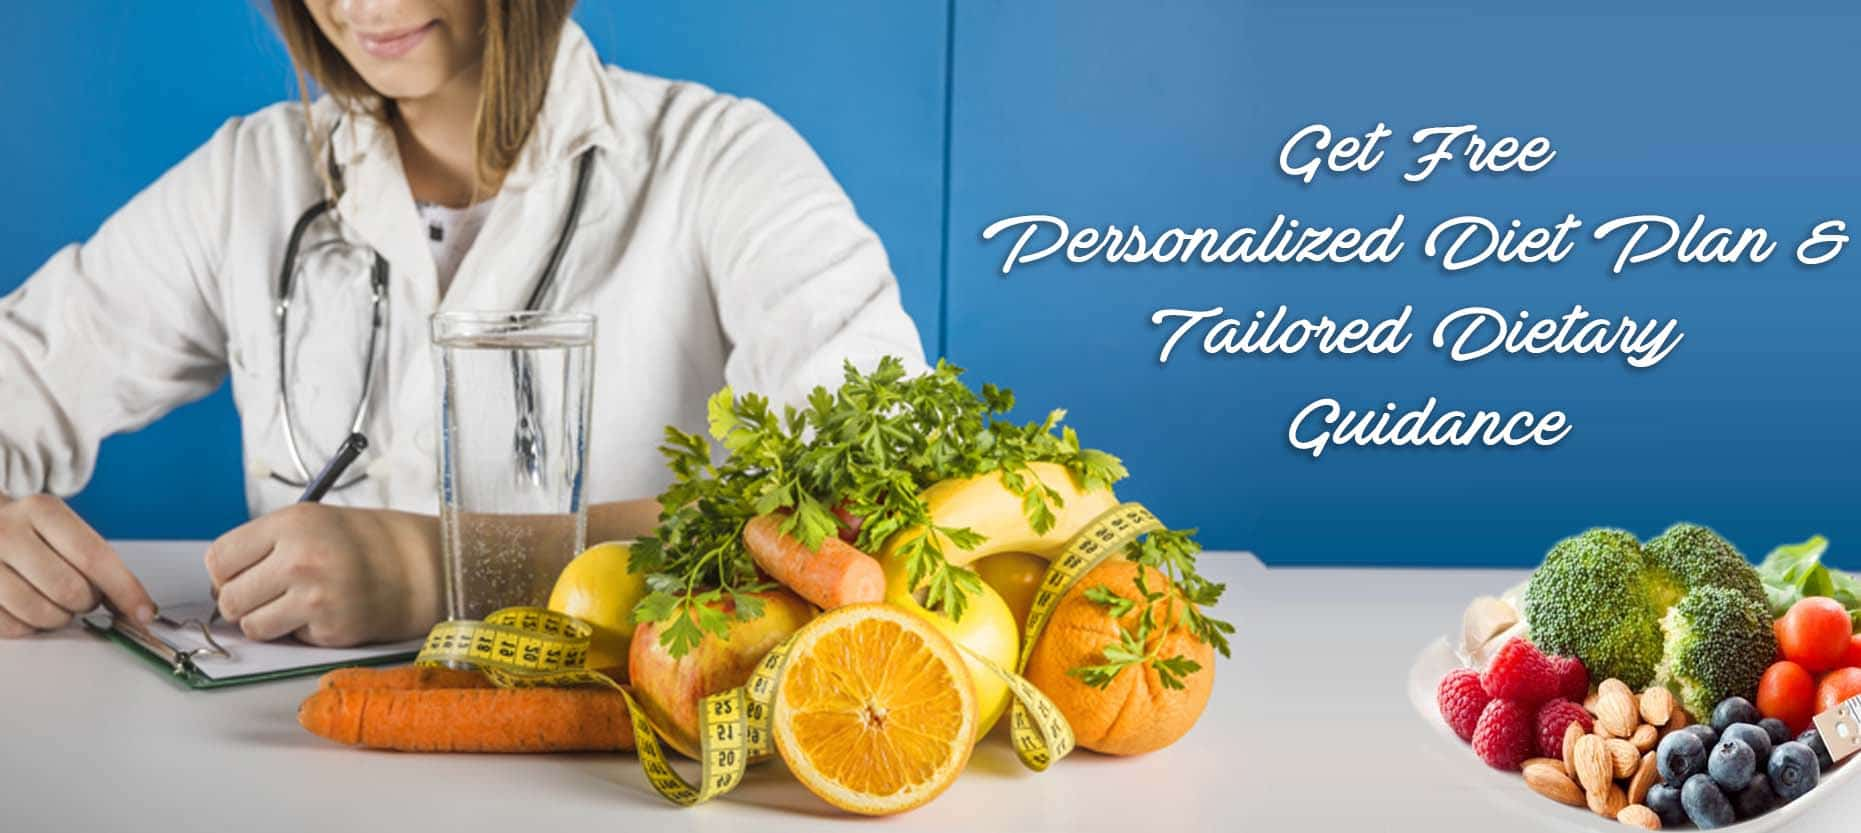 Get Free Personalized Diet Plan & Tailored Dietary Guidance